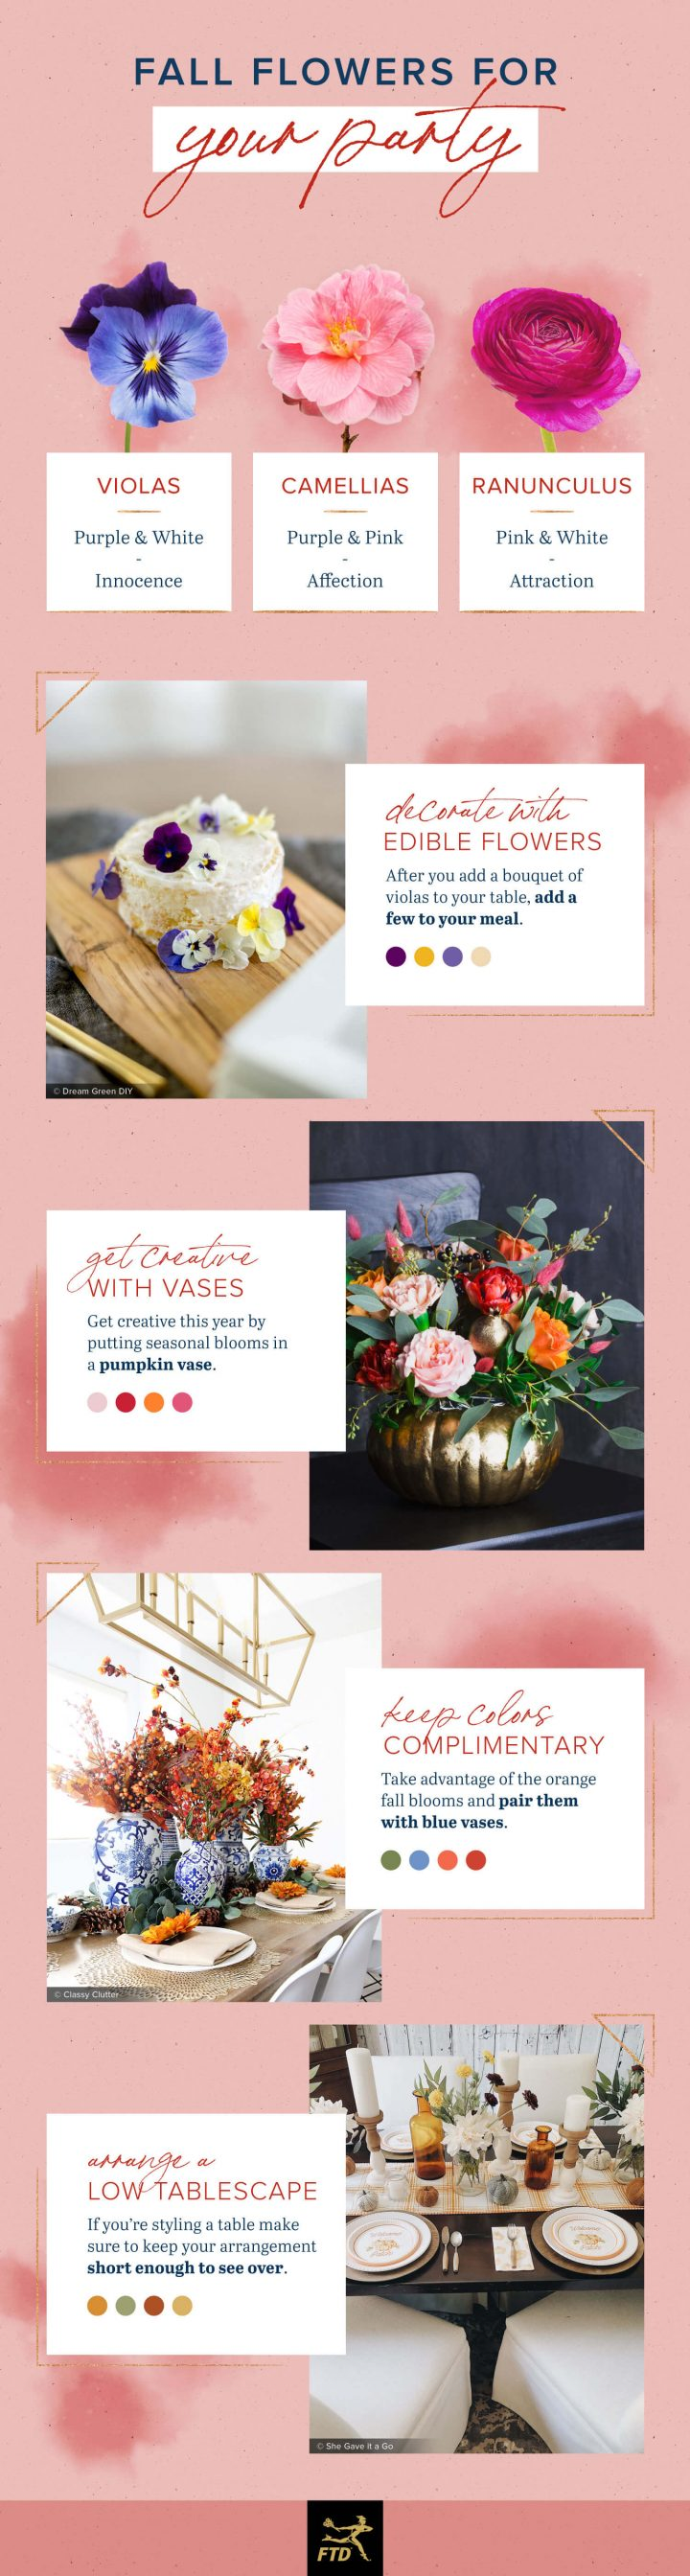 ideas for including fall flowers in your parties.